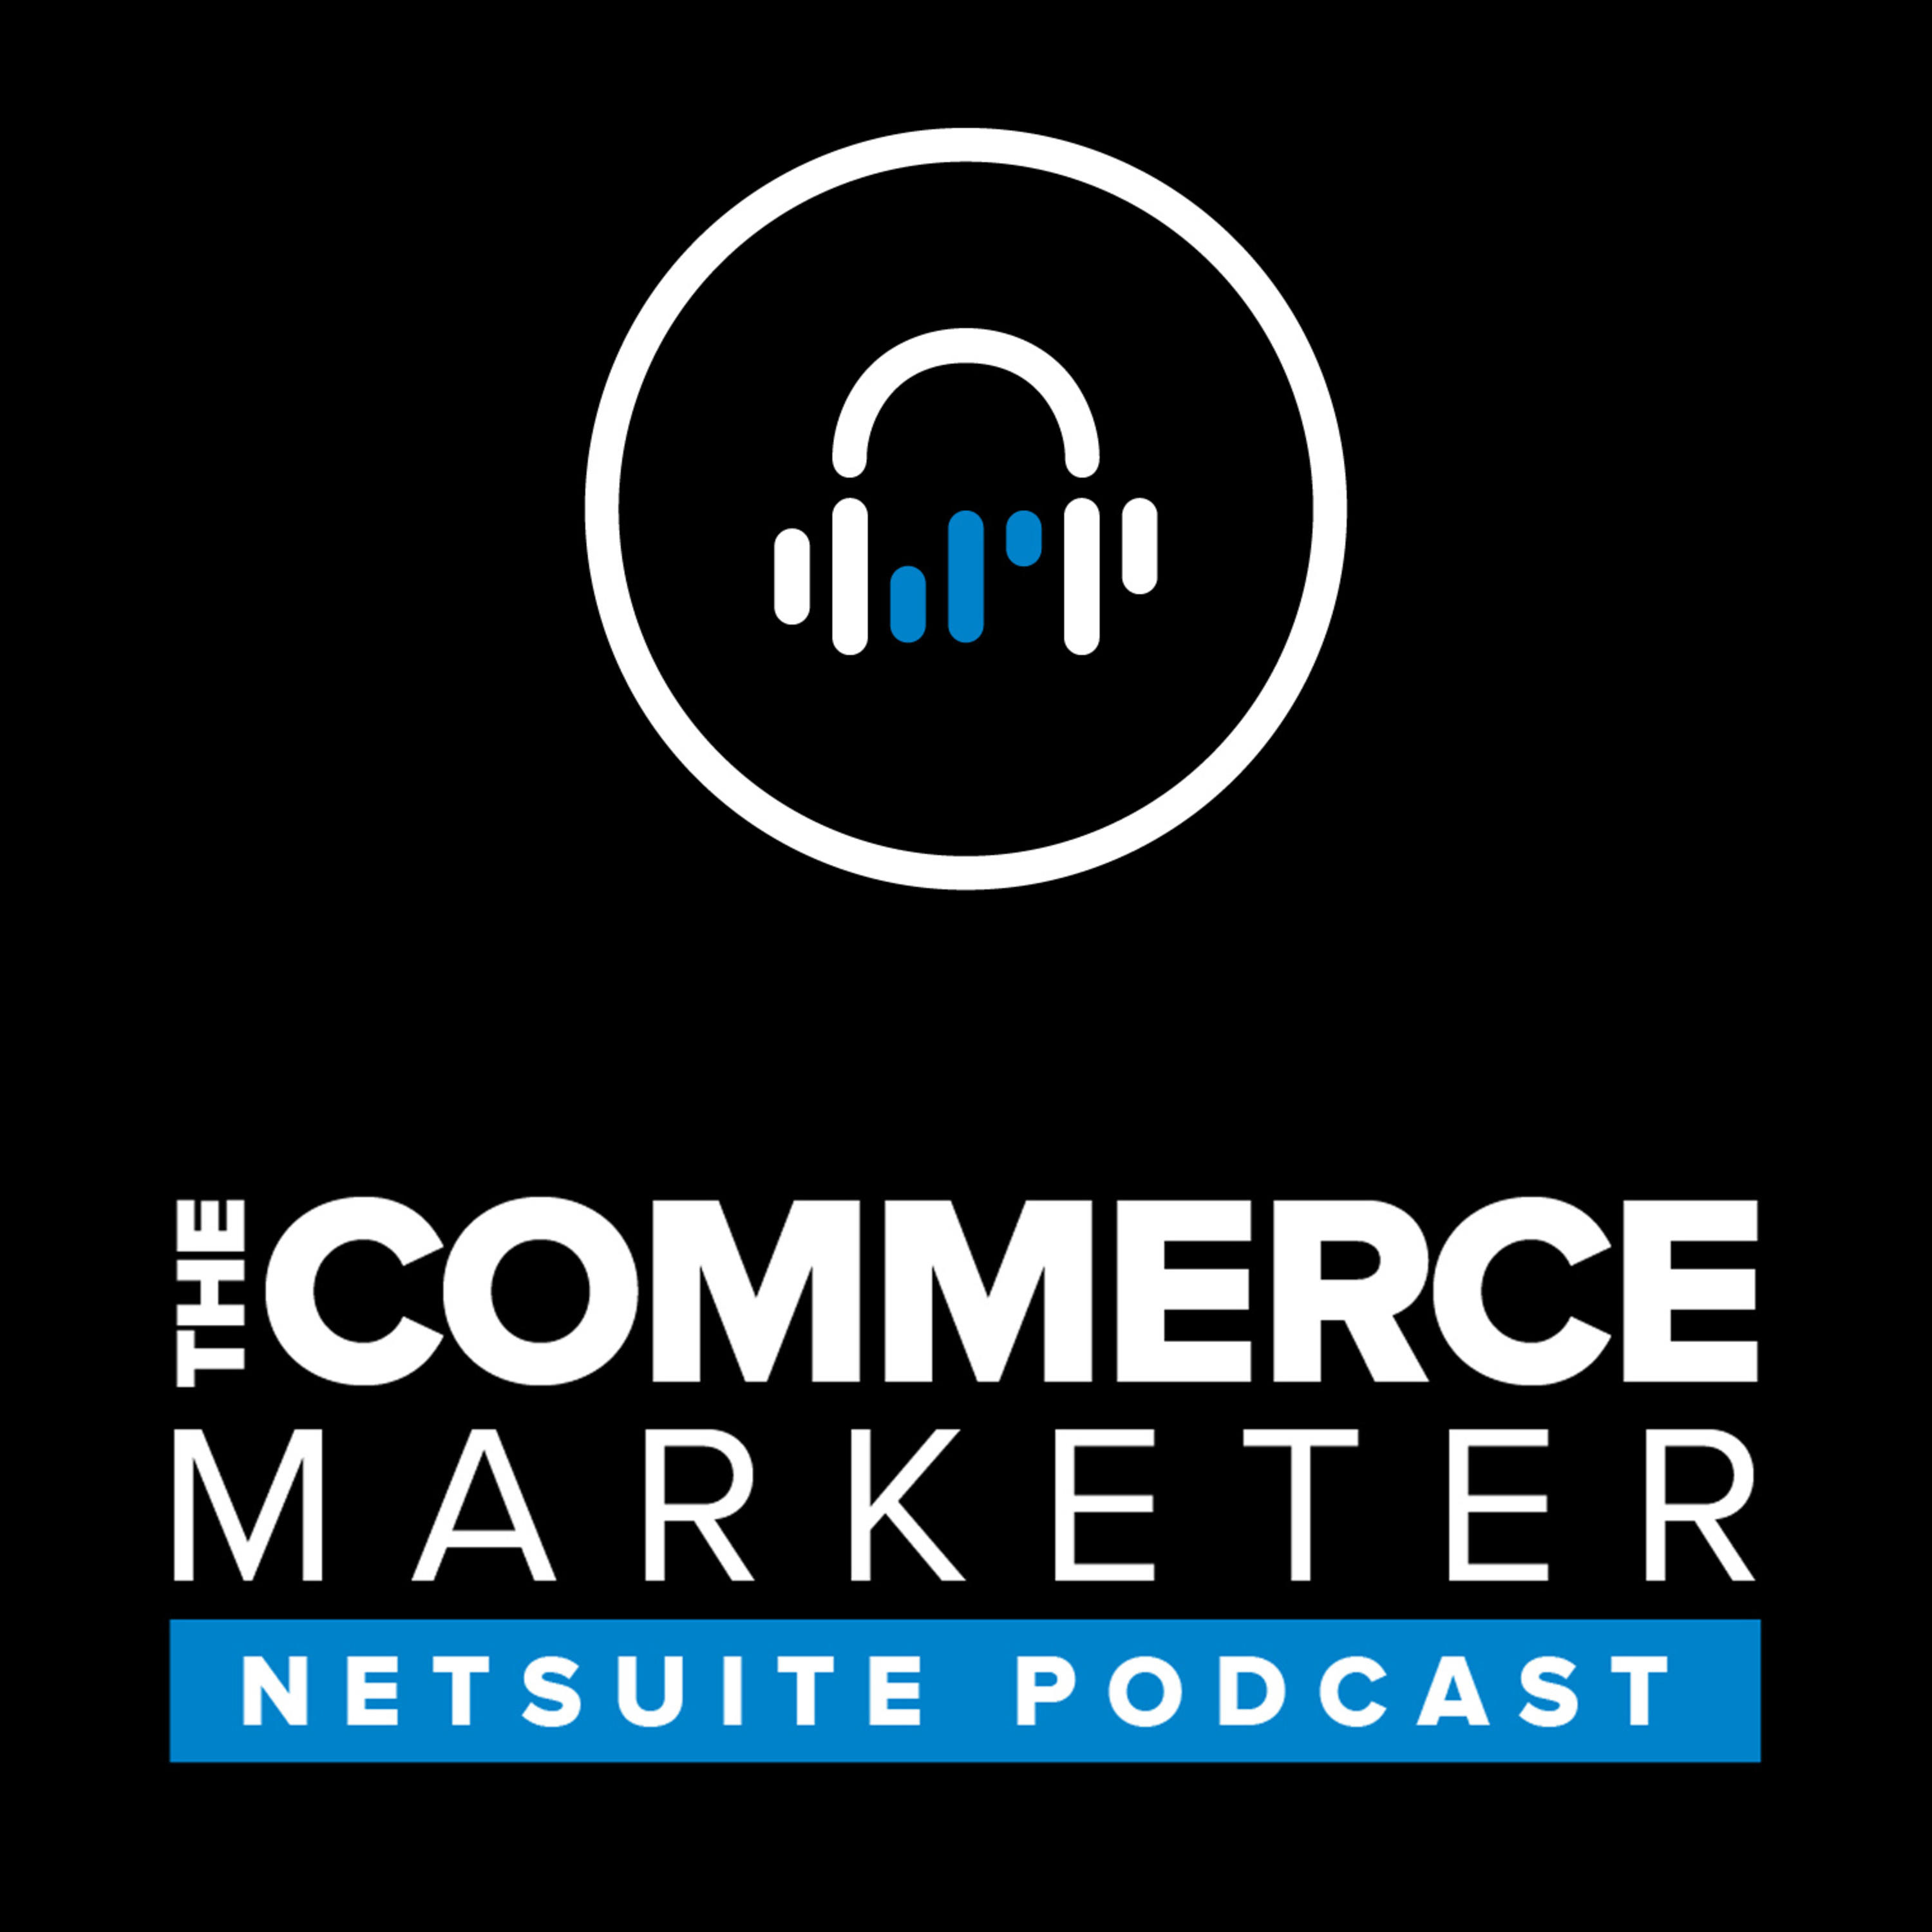 Episode 045: Email Marketing, Deliverability and Marketing to a Niche Audience